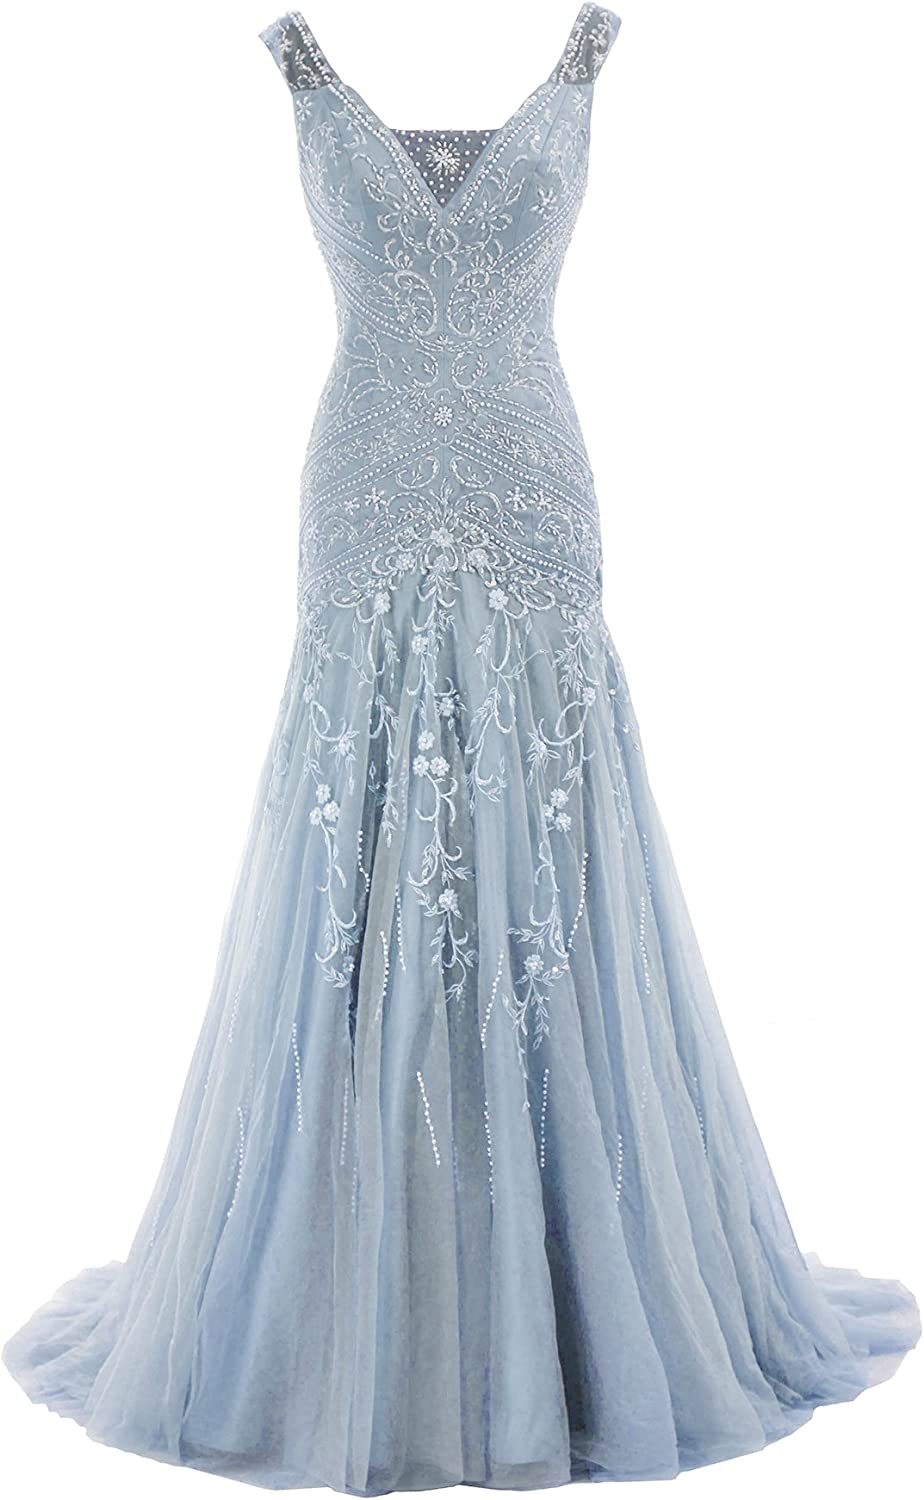 Cocomelody A Line V Neck Long Beaded Evening Dress Bmmc0009 Sky bluee 10